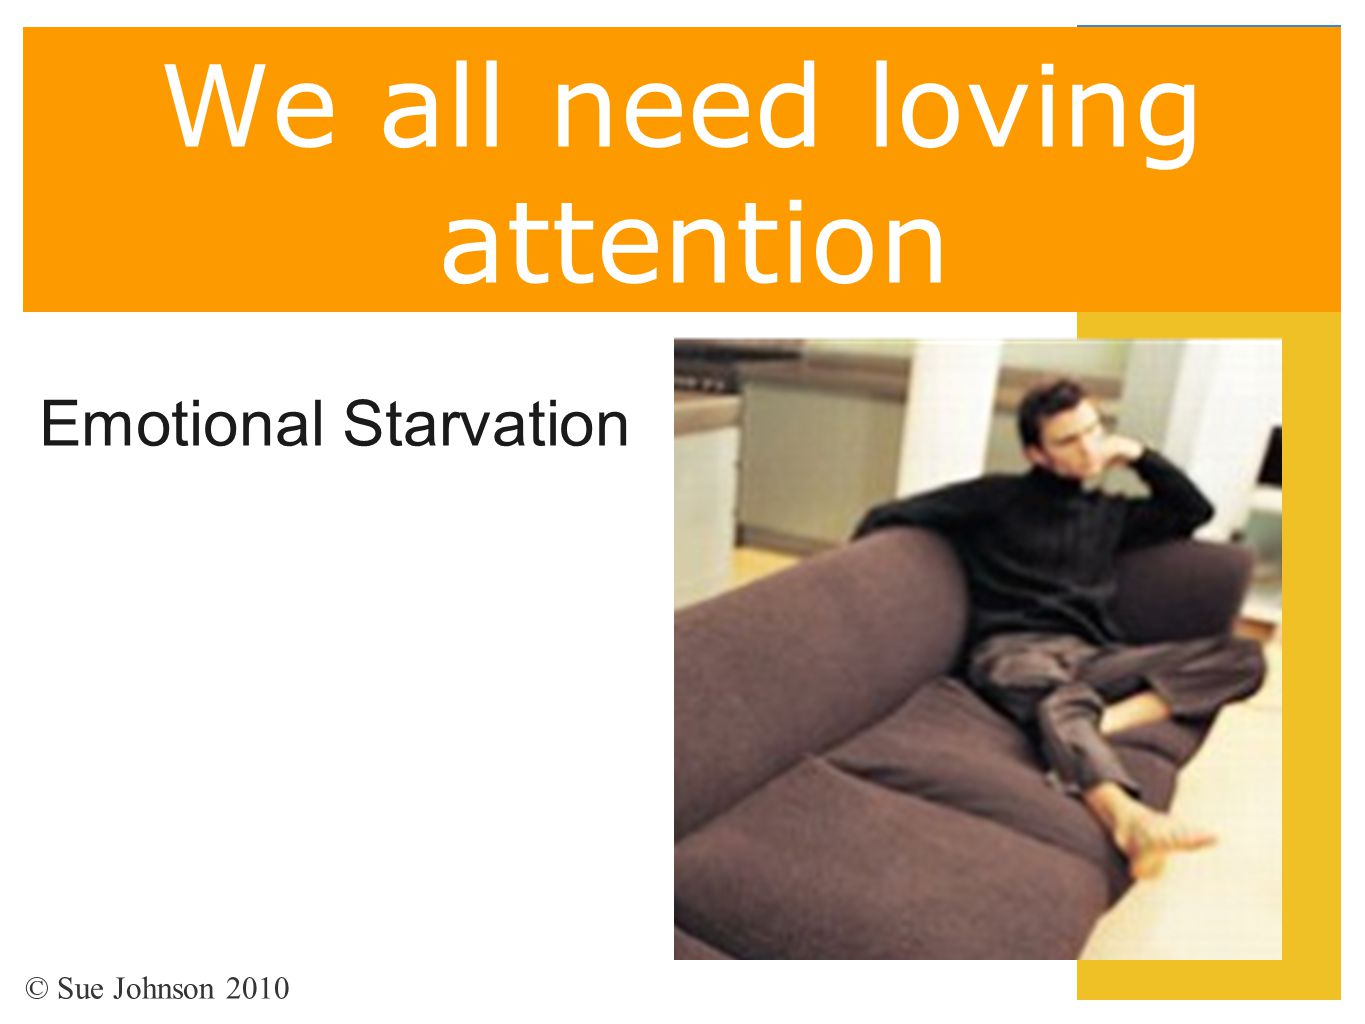 We all need loving attention